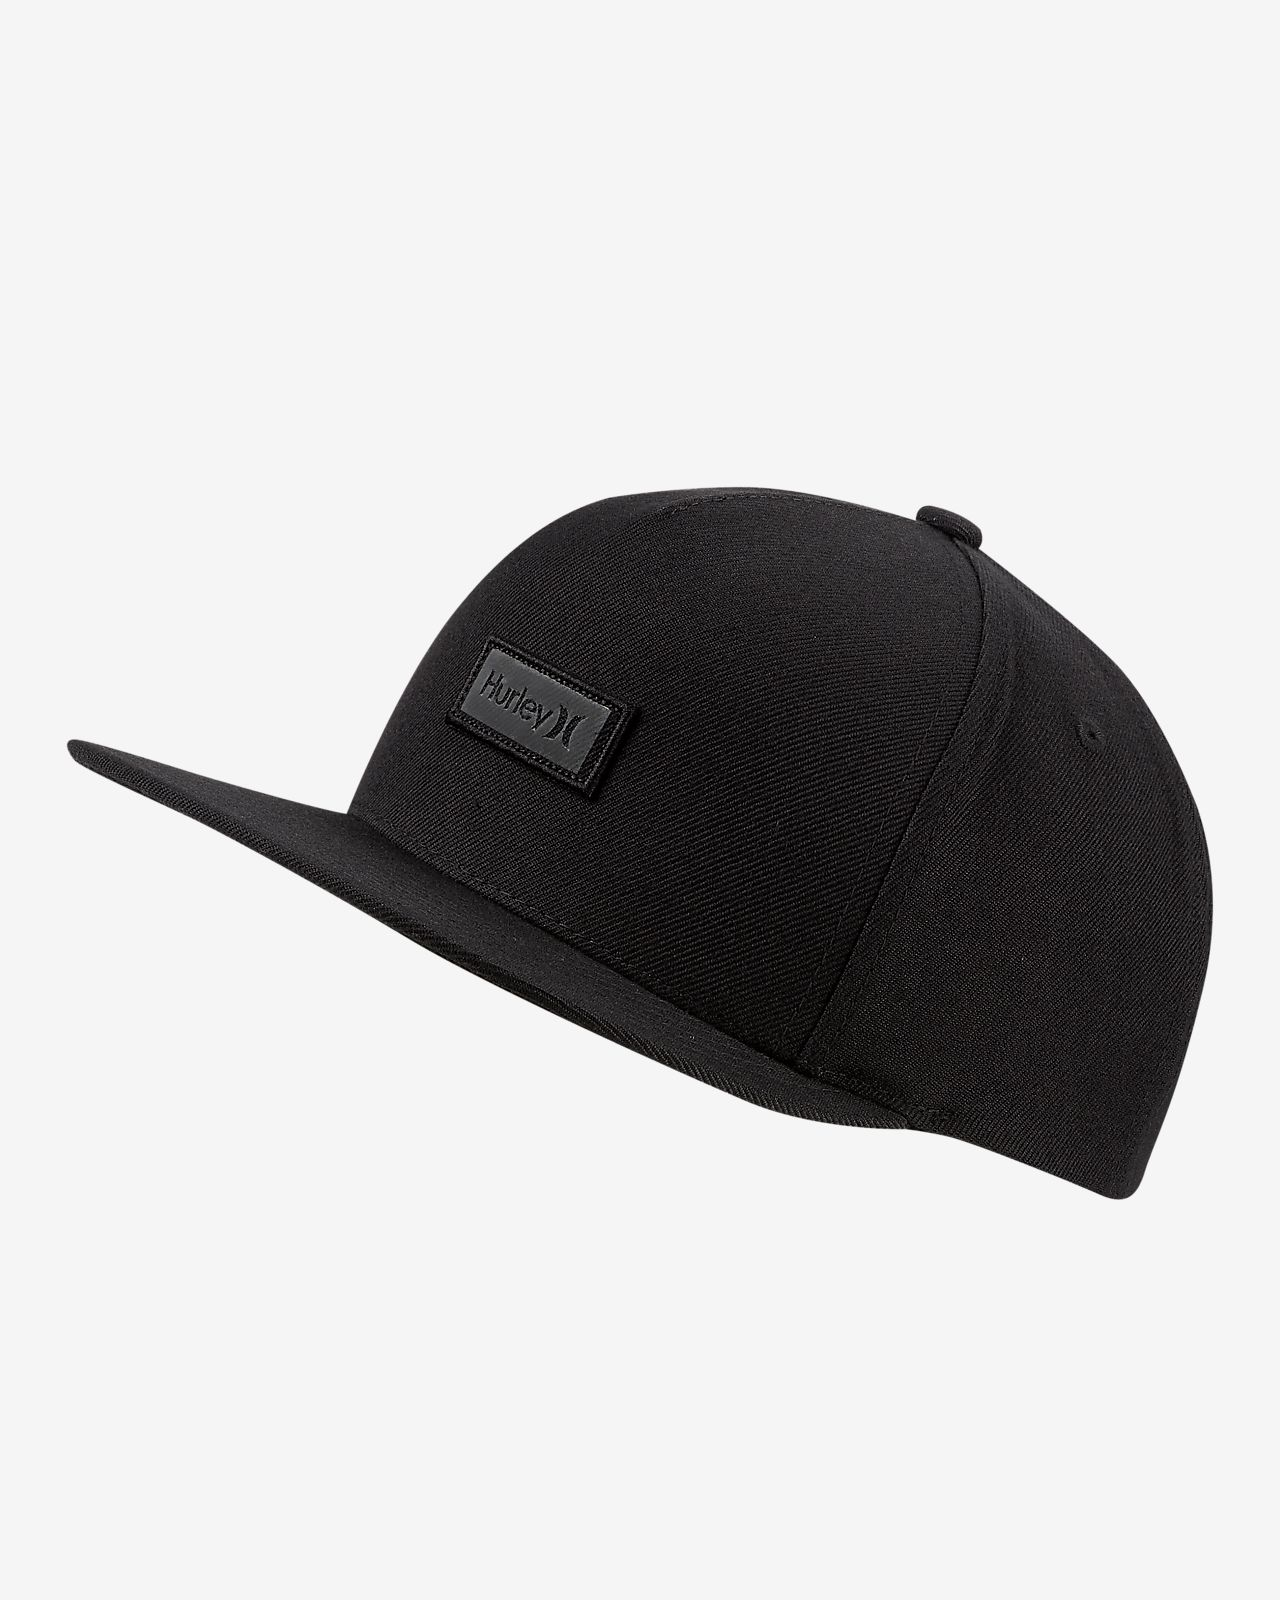 Hurley One And Only Boxed Reflective Men's Hat